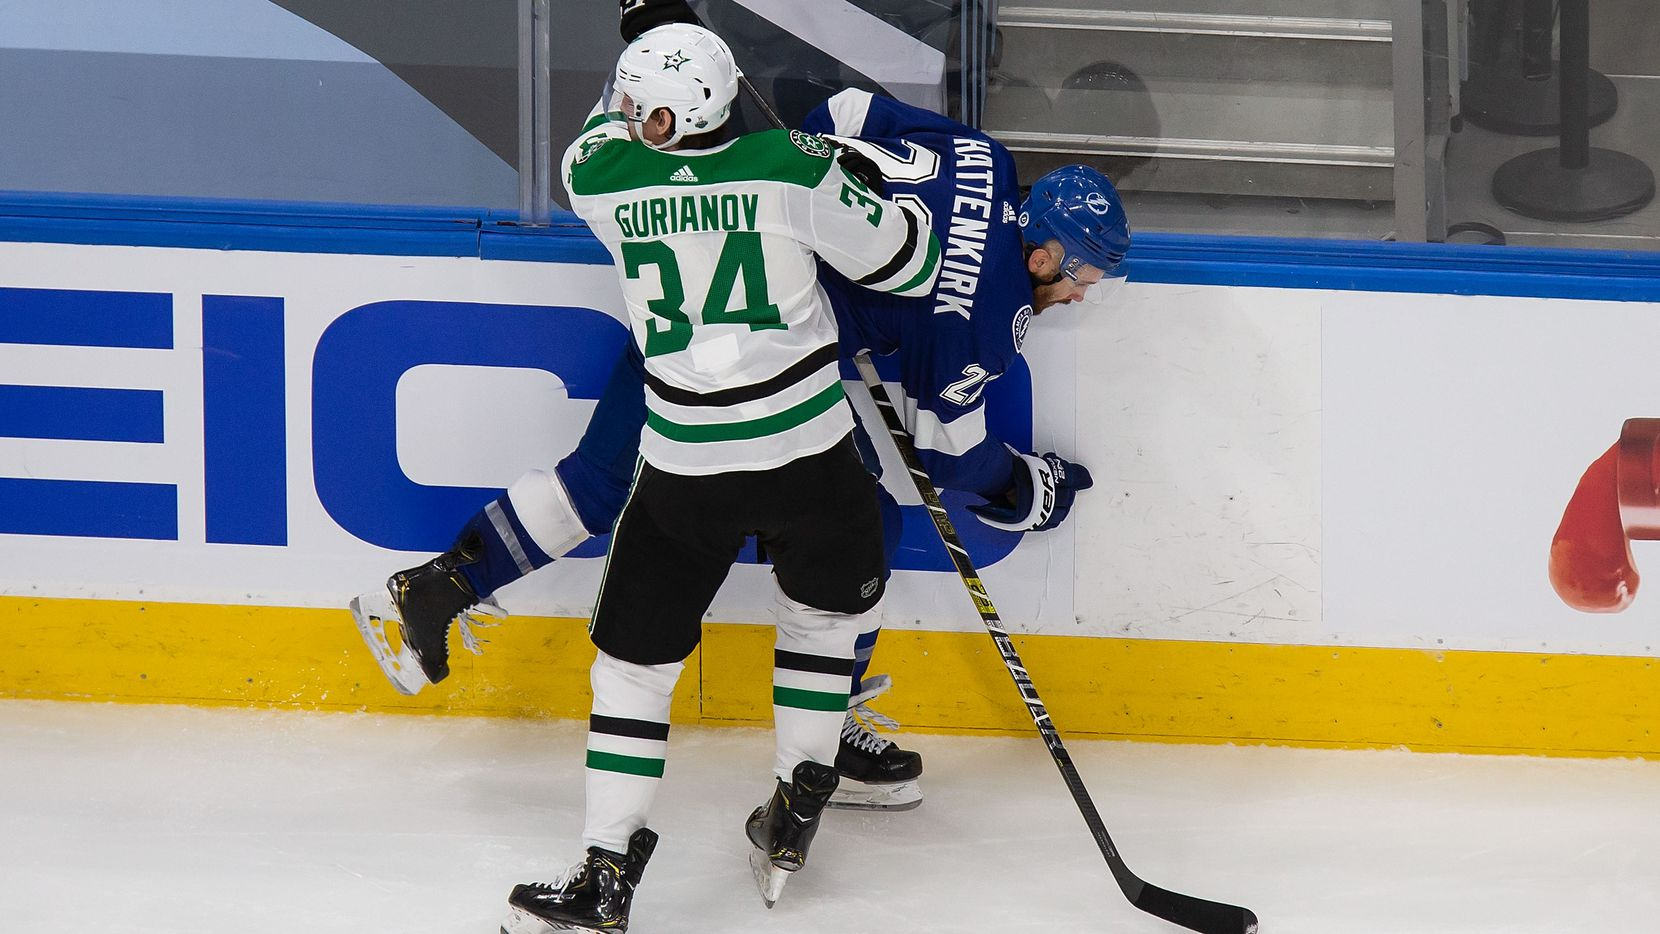 Denis Gurianov (34) of the Dallas Stars hits Kevin Shattenkirk (22) of the Tampa Bay Lightning during Game One of the Stanley Cup Final at Rogers Place in Edmonton, Alberta, Canada on Saturday, September 19, 2020.